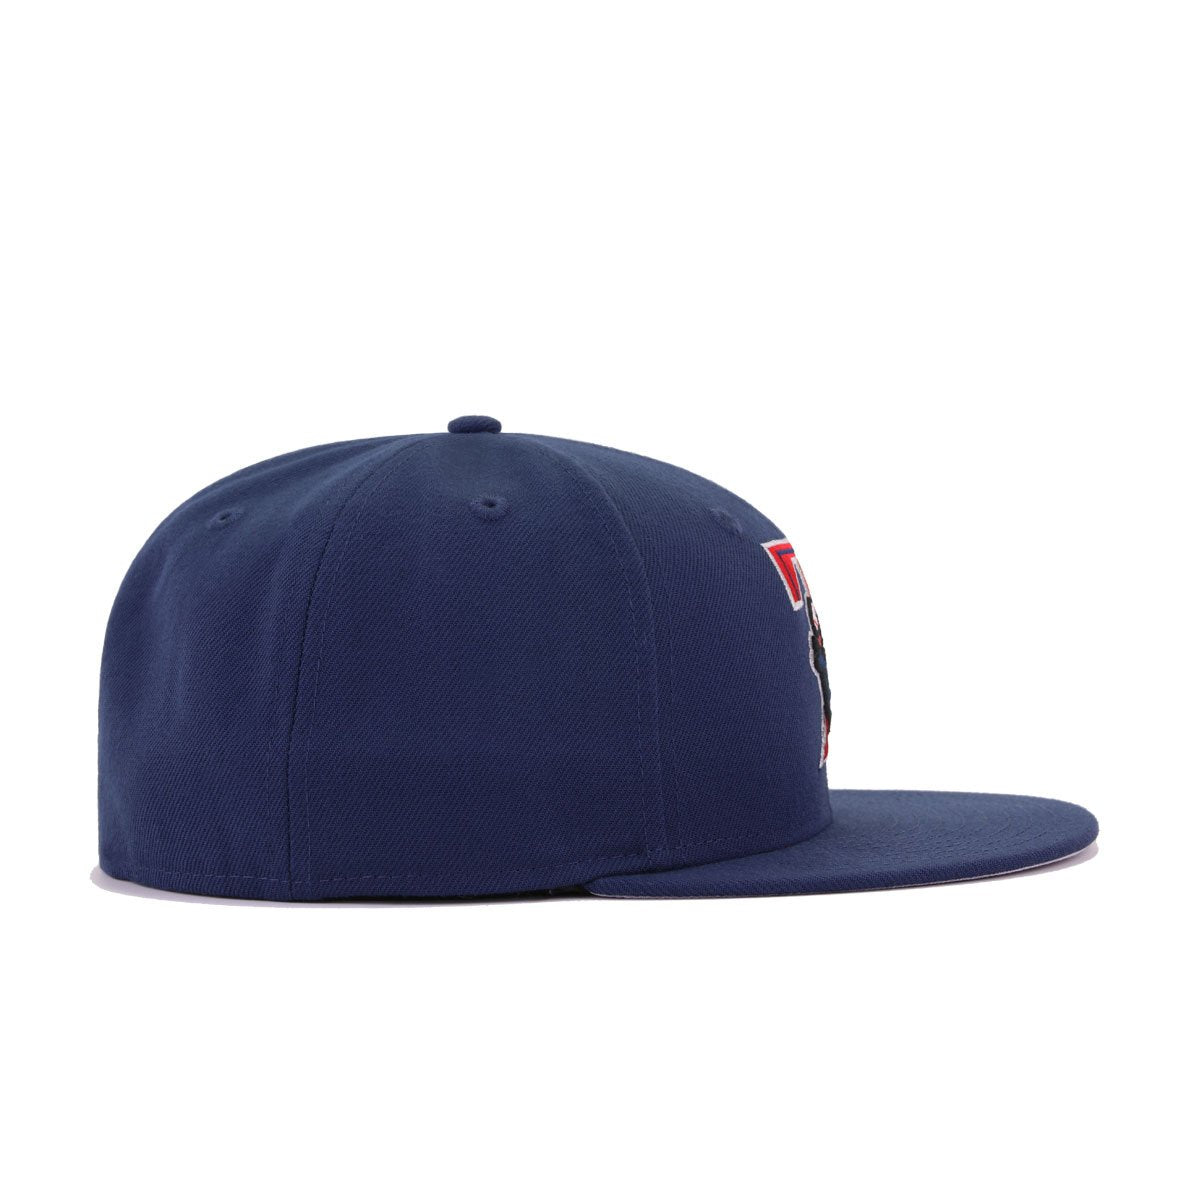 Toronto Blue Jays Oceanside Blue 2003 New Era 59Fifty Fitted